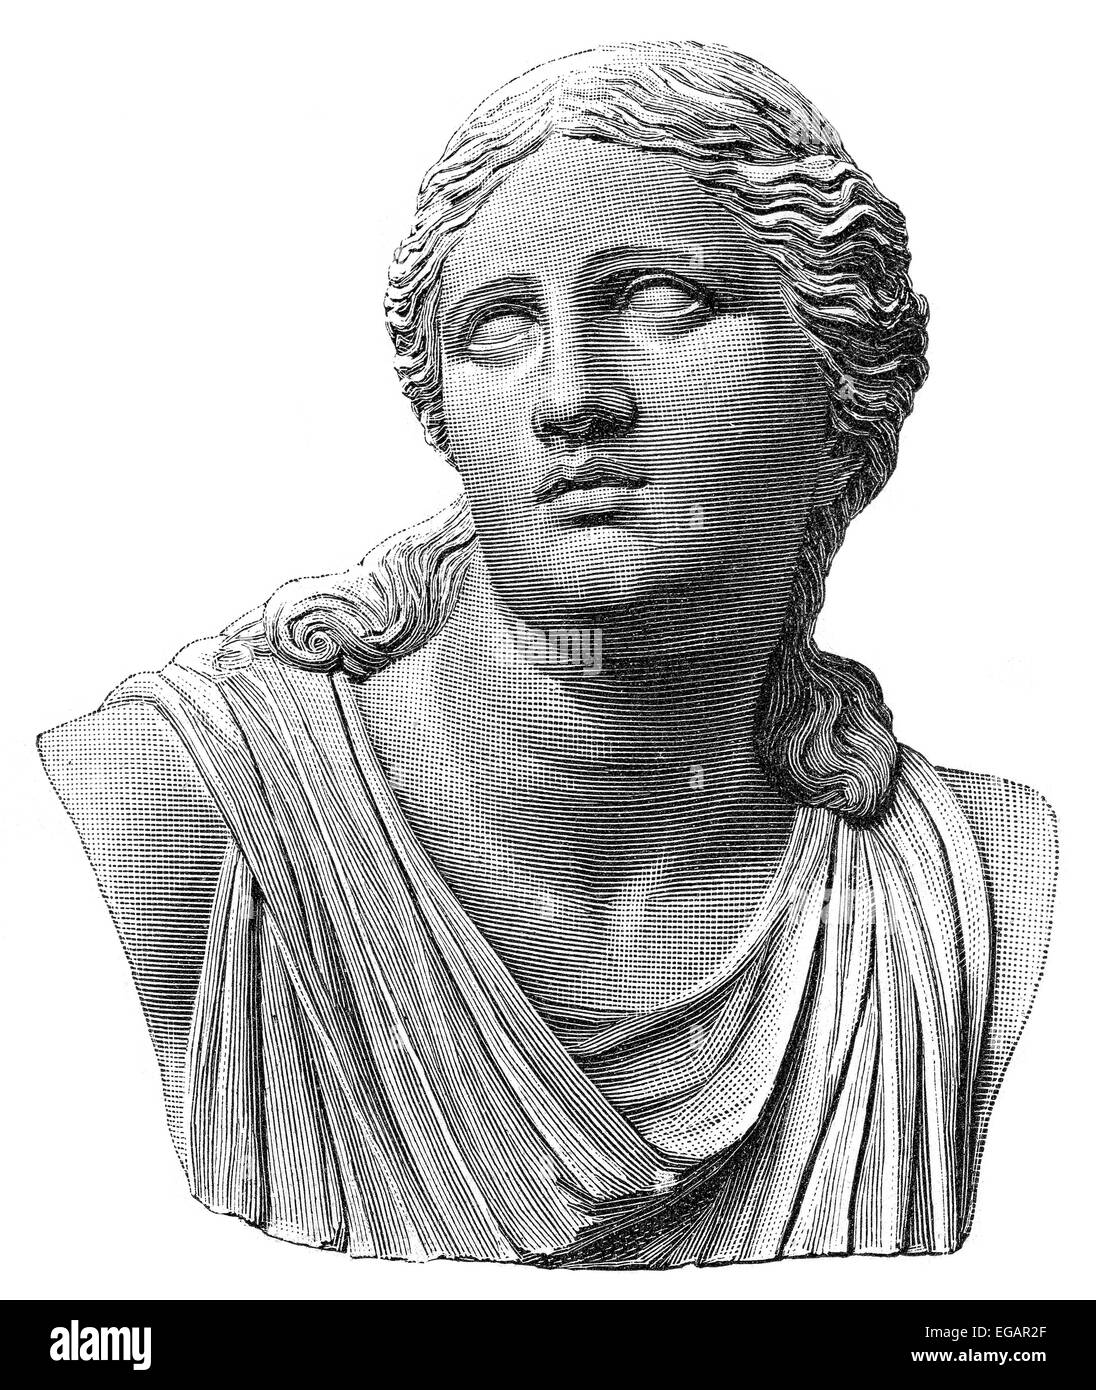 Niobe, a daughter of Tantalus and of either Dione, a figure in Greek mythology, Stock Photo